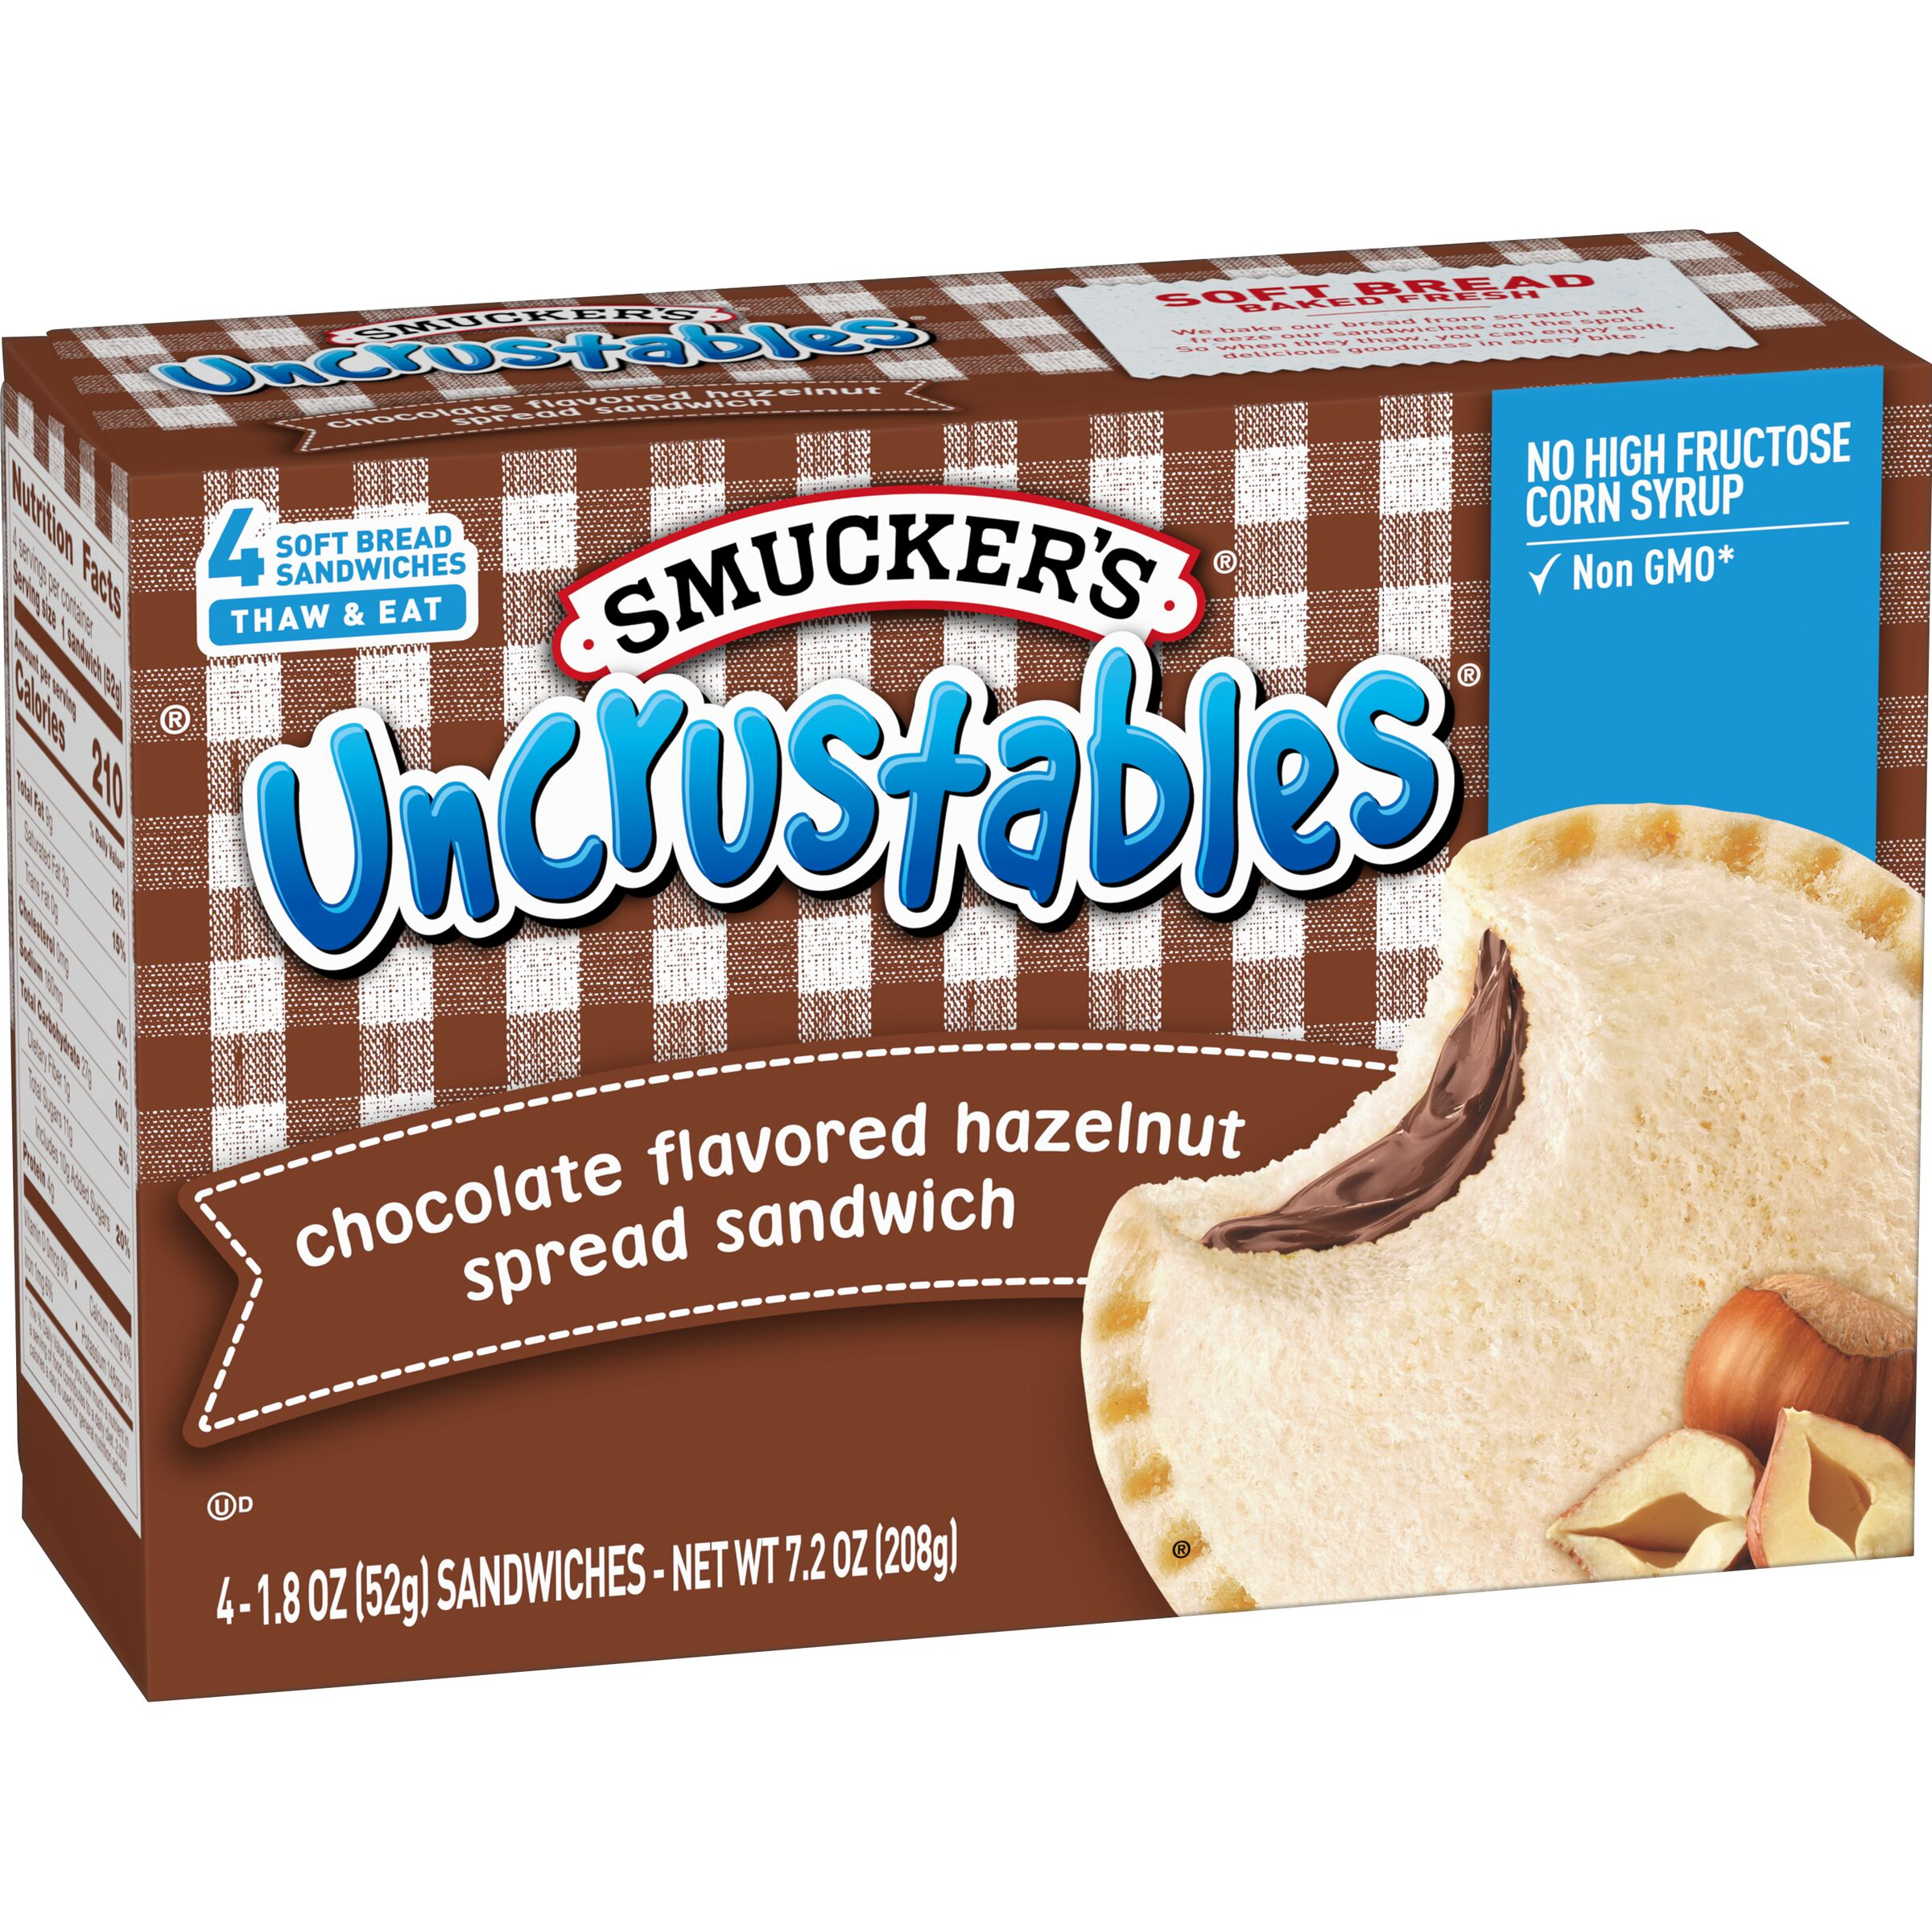 Smucker's Uncrustables Chocolate Hazelnut Spread Sandwich